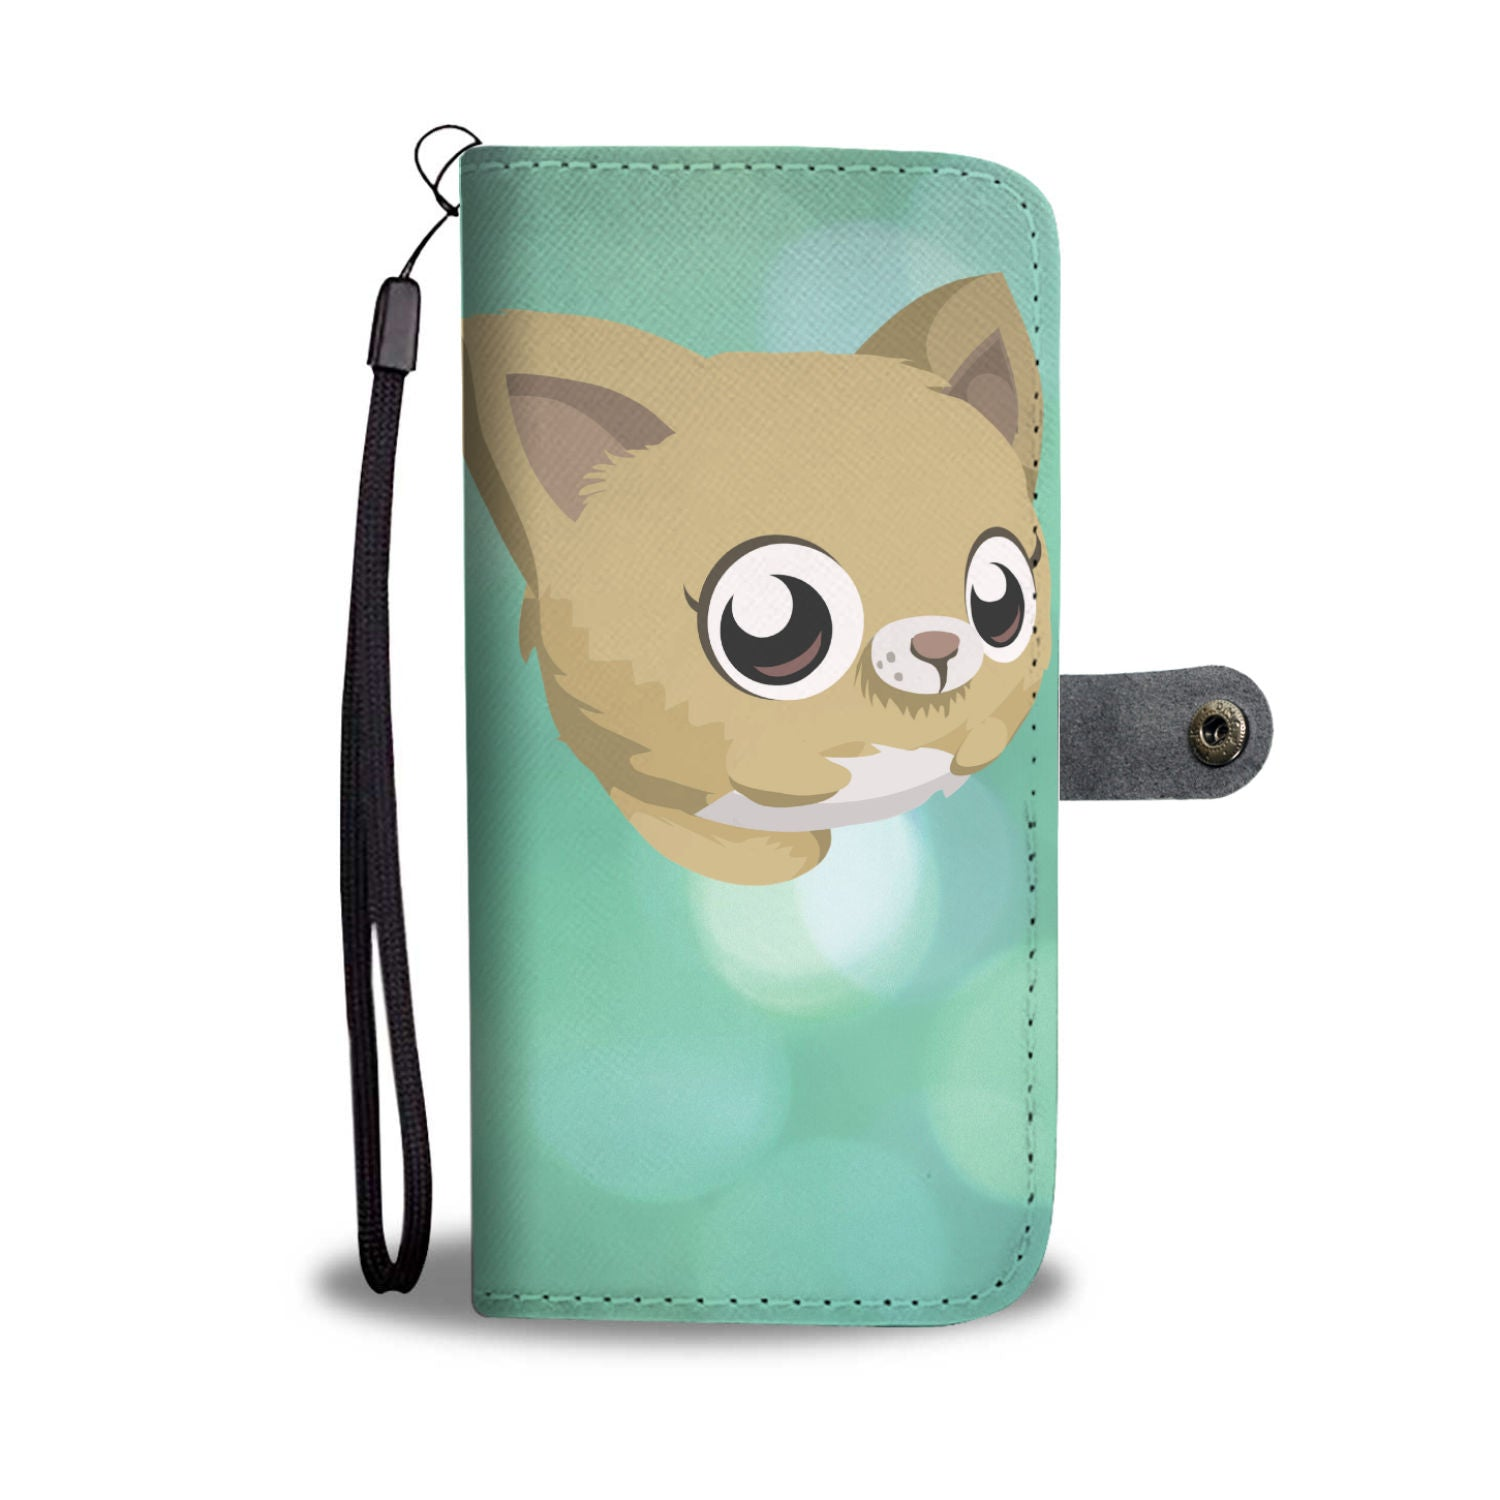 Anime Kitty Wallet Phone Case